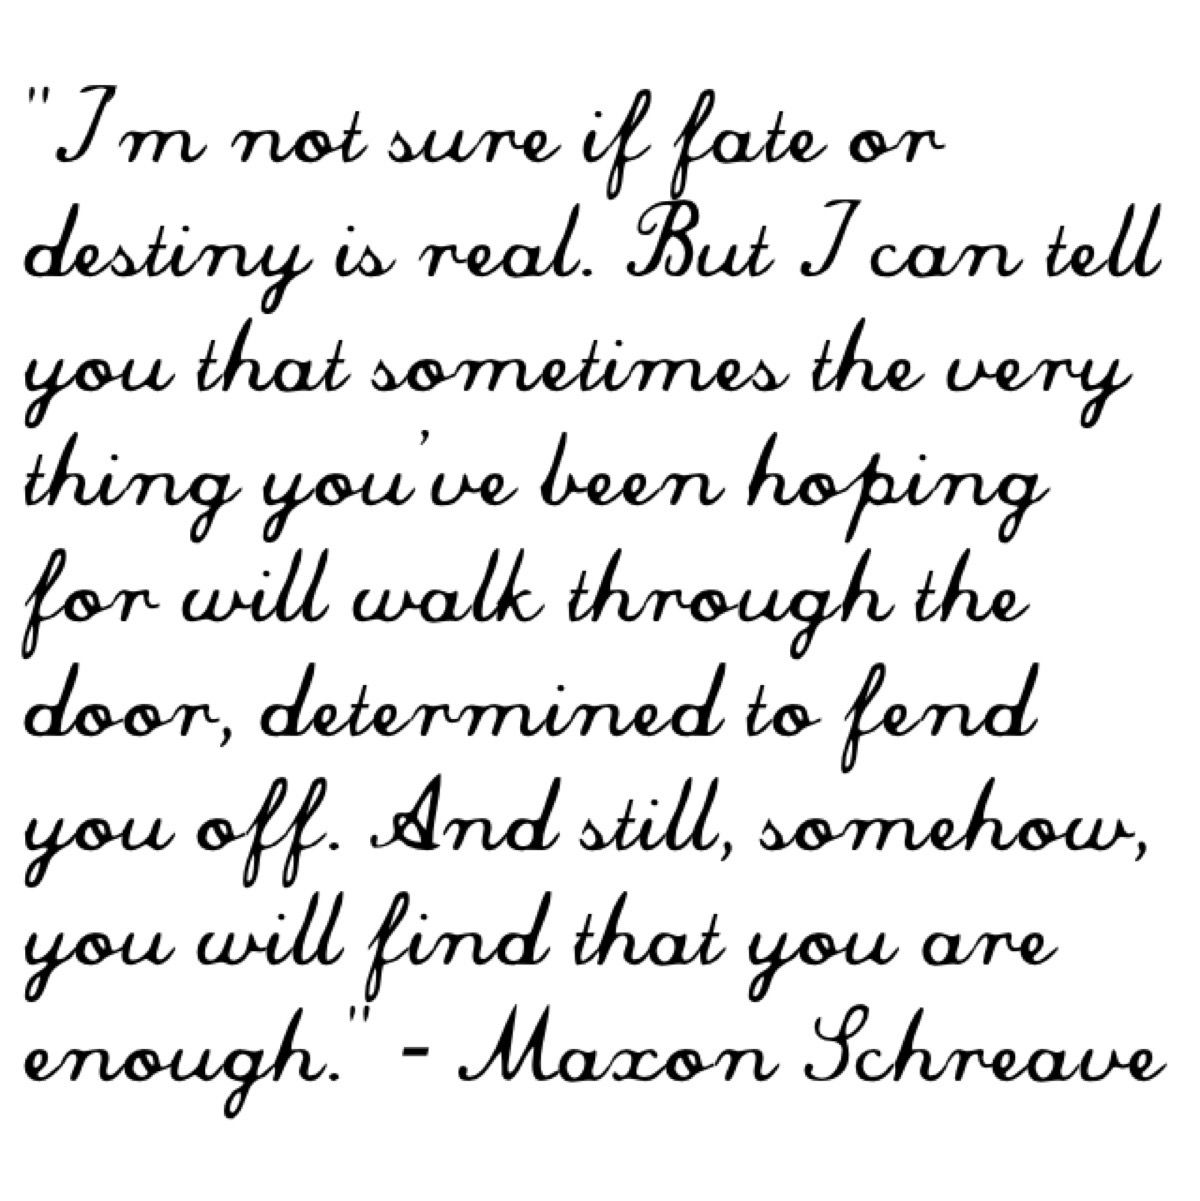 Maxon to Eadlyn. I'm pretty sure he's talking about